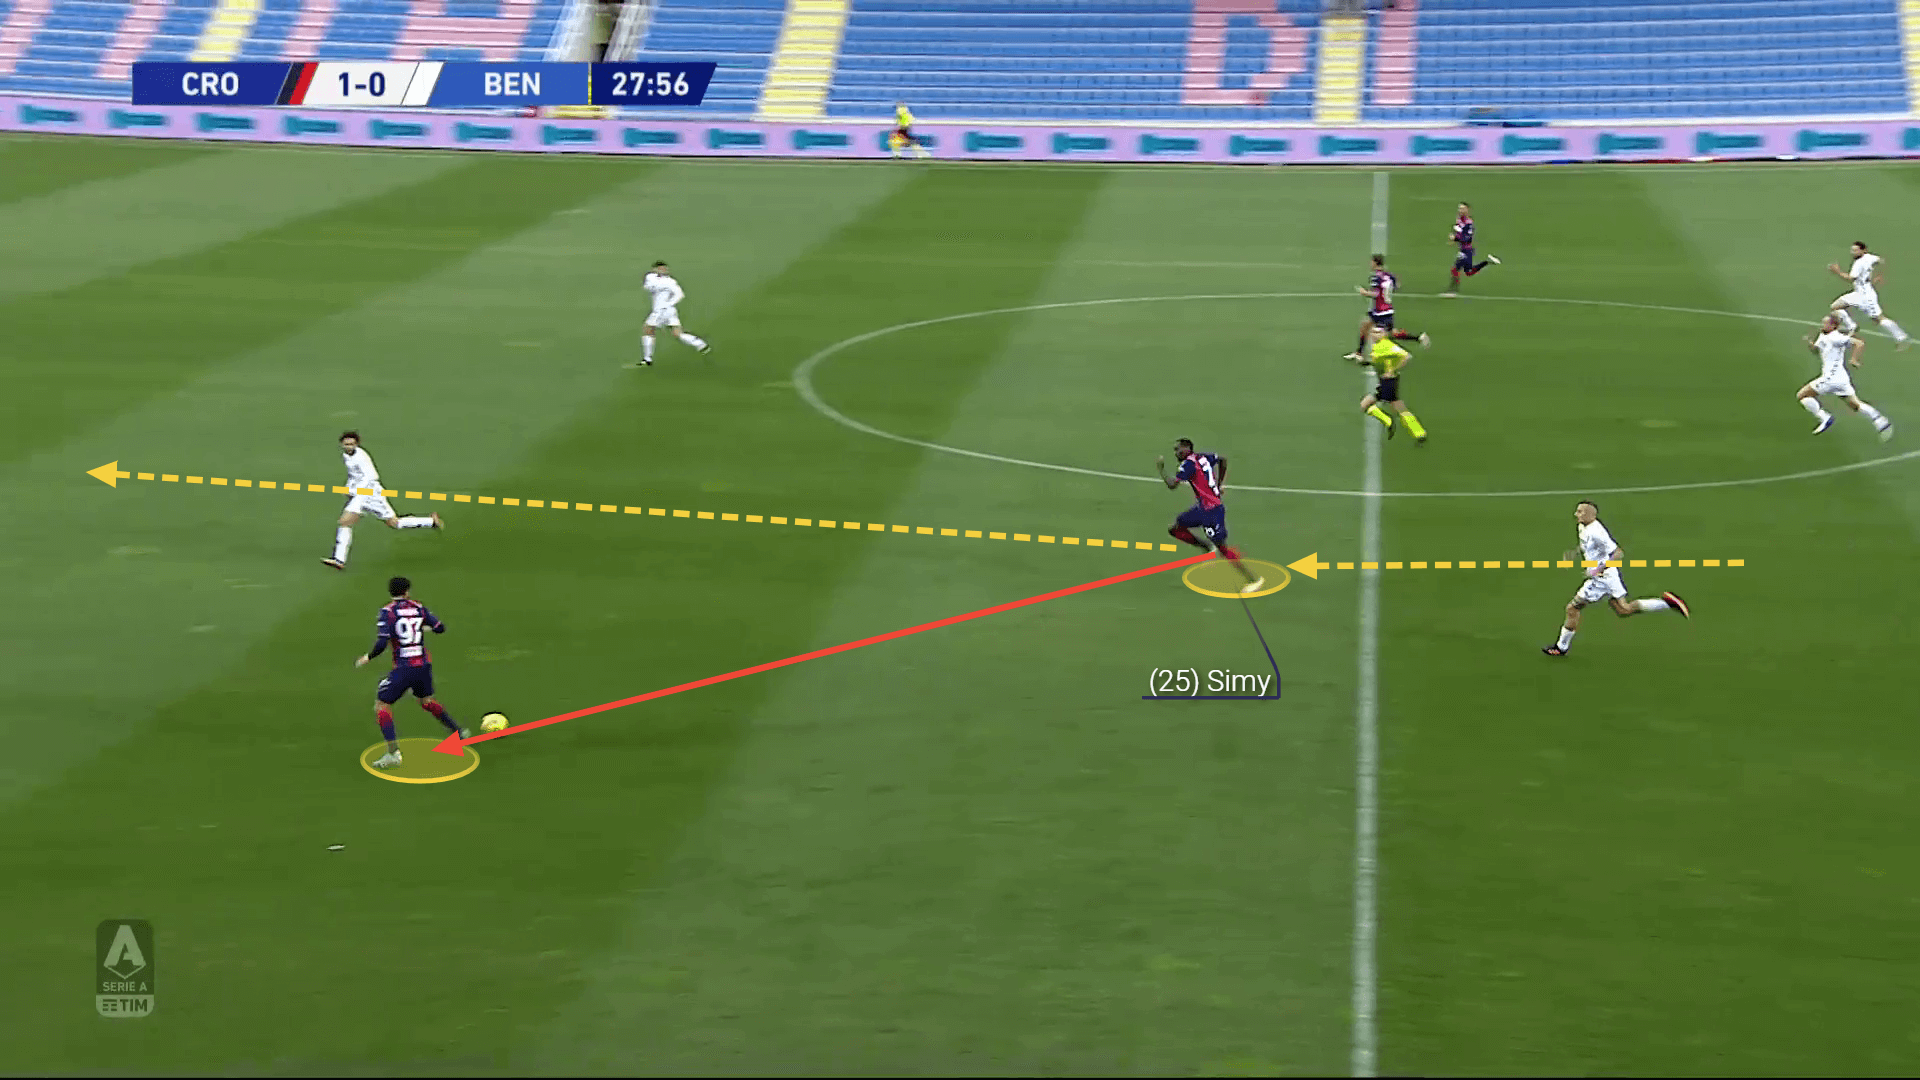 The rising Eagle Simy: How he silently took over the Serie A goalscoring charts - scout report tactical analysis tactics